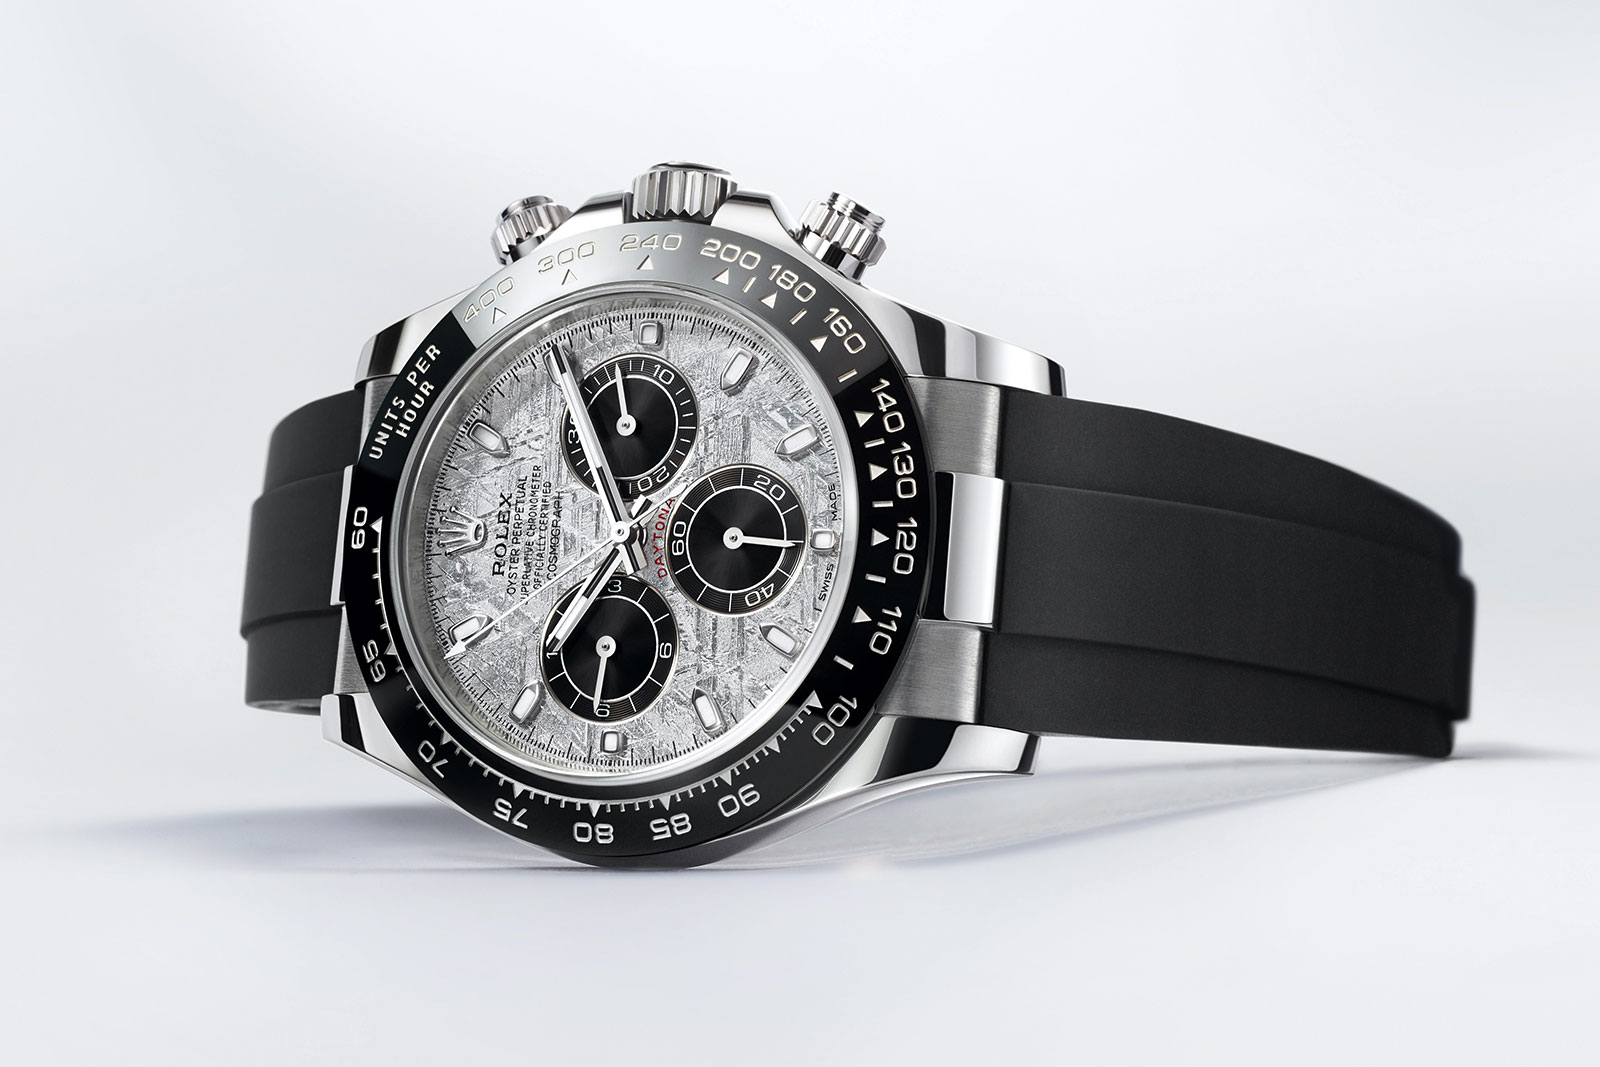 rolex daytona with meteorite dial on rubber strap